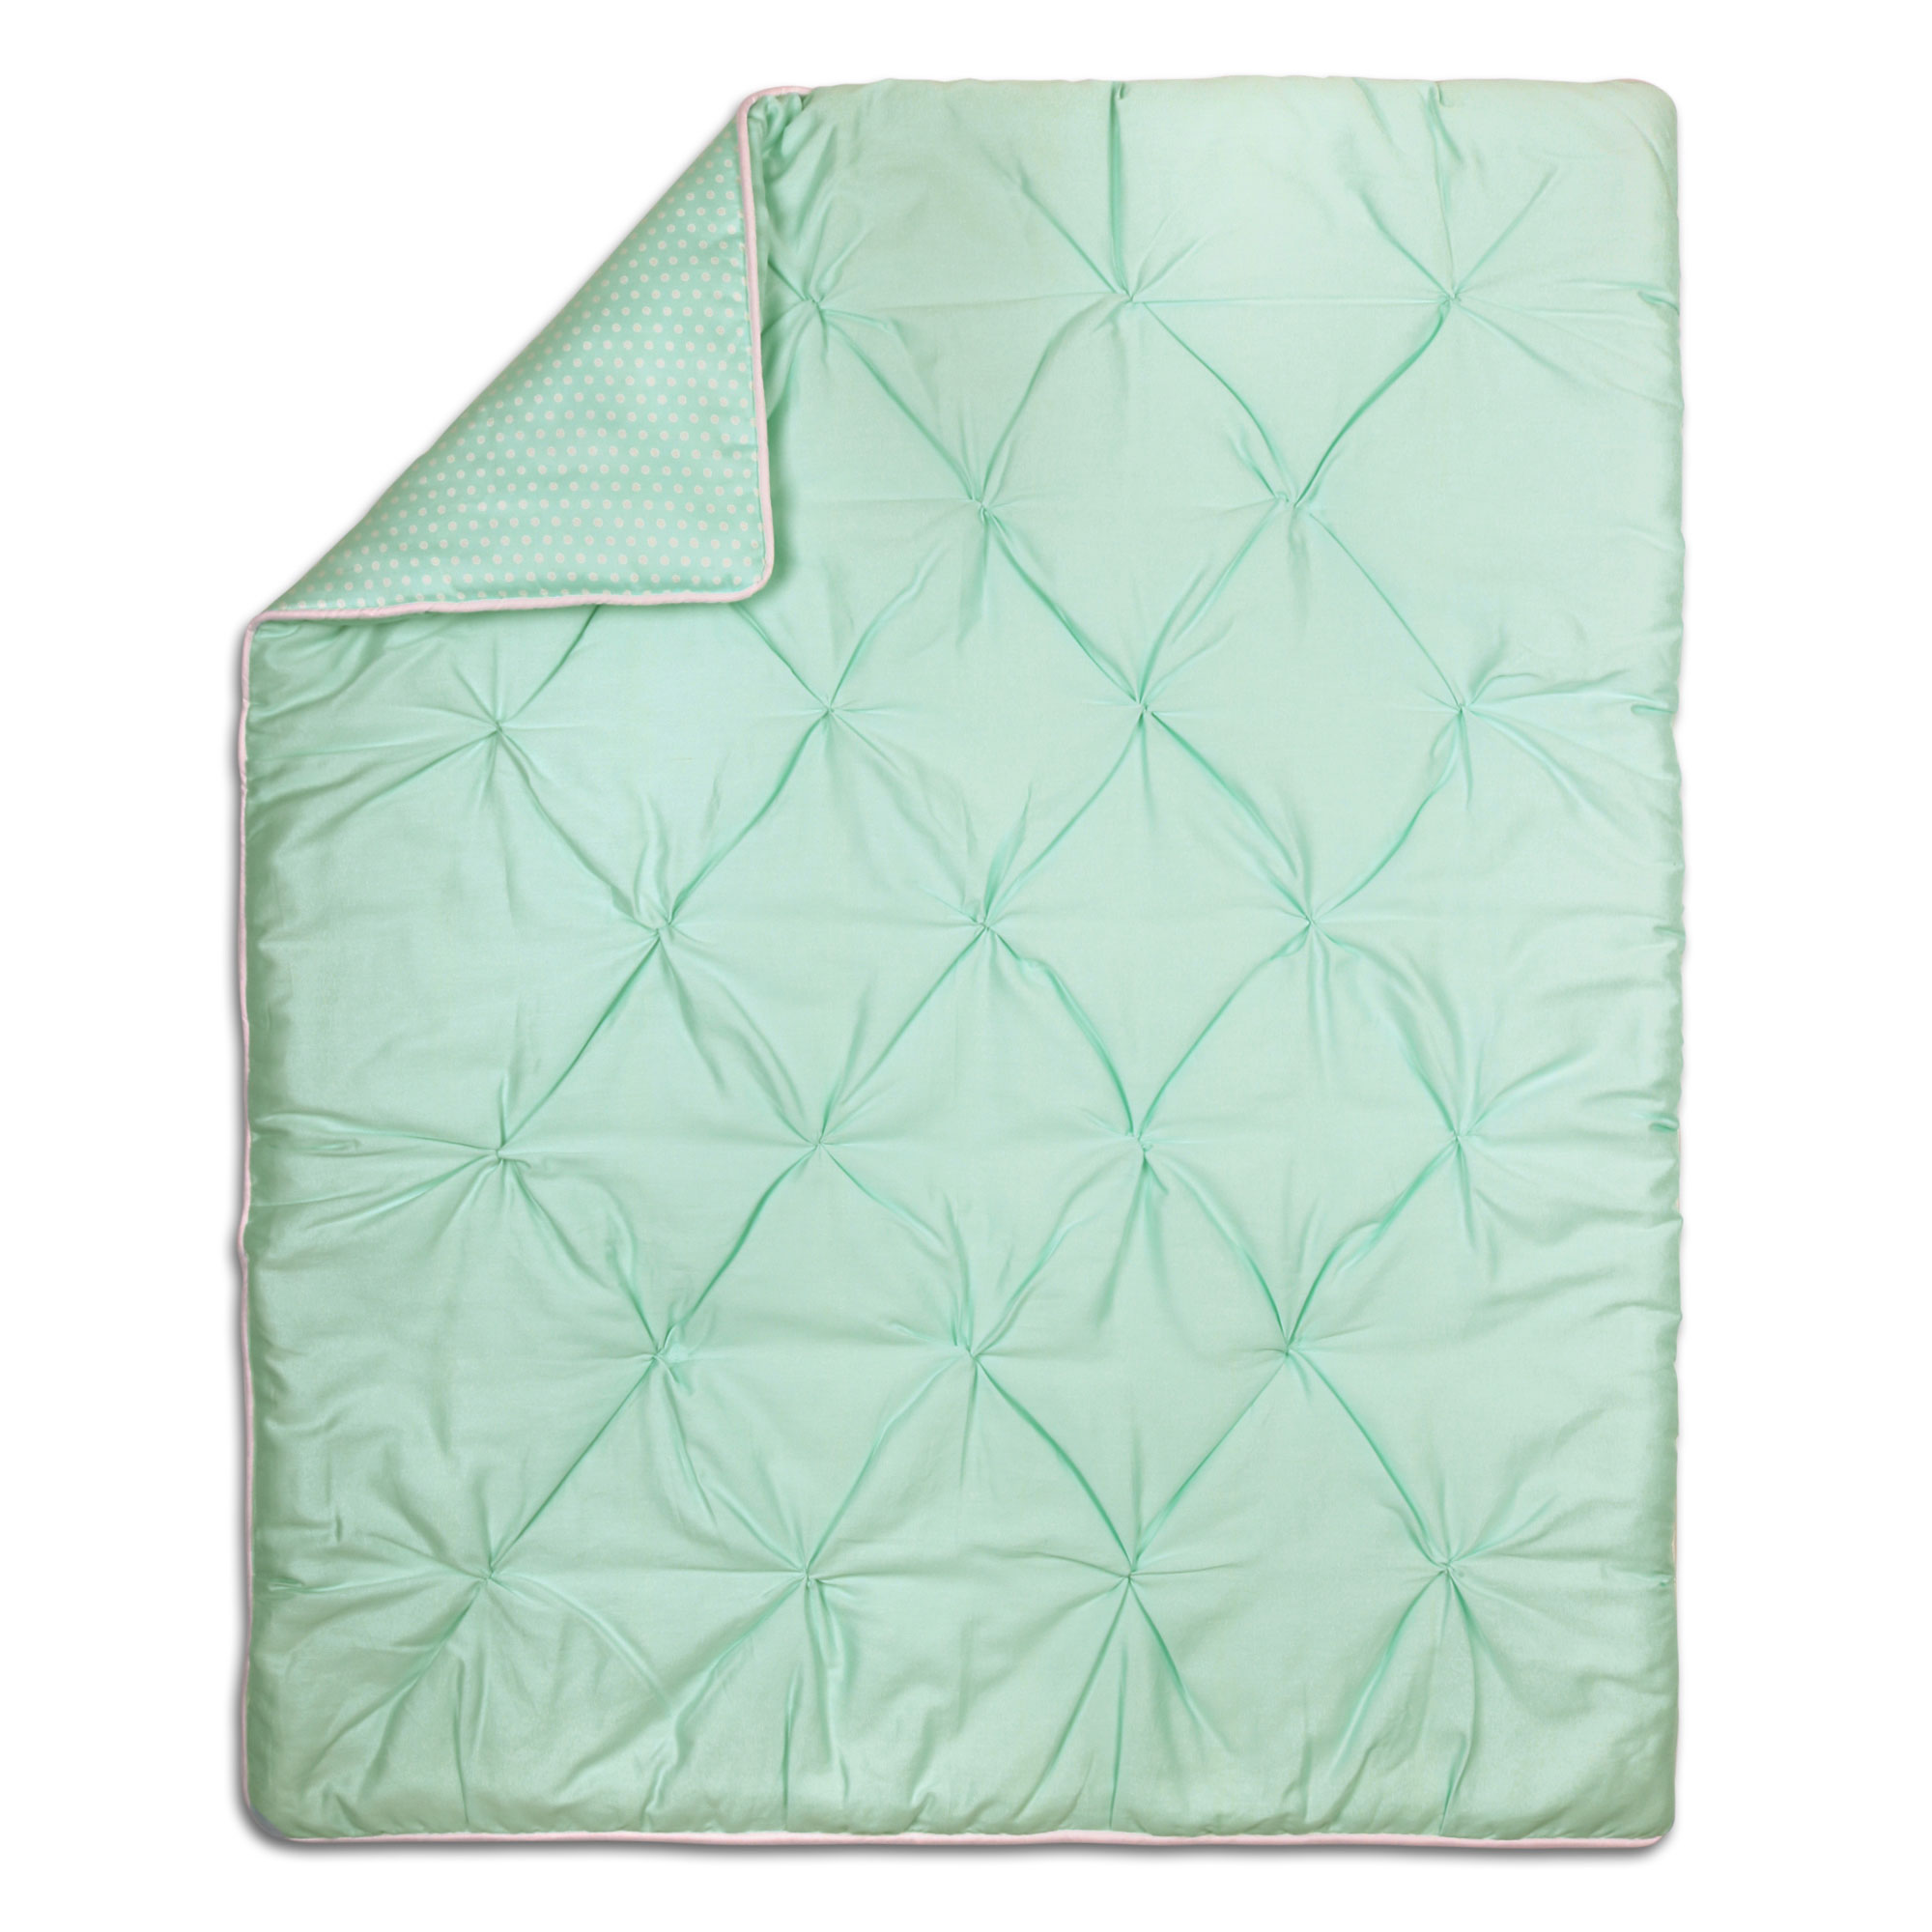 The Peanut Shell Baby Crib Quilt Mint Green Pintucked and Dots Print 100% Cotton Sateen Fabrics, 44 by 37... by The Peanut Shell